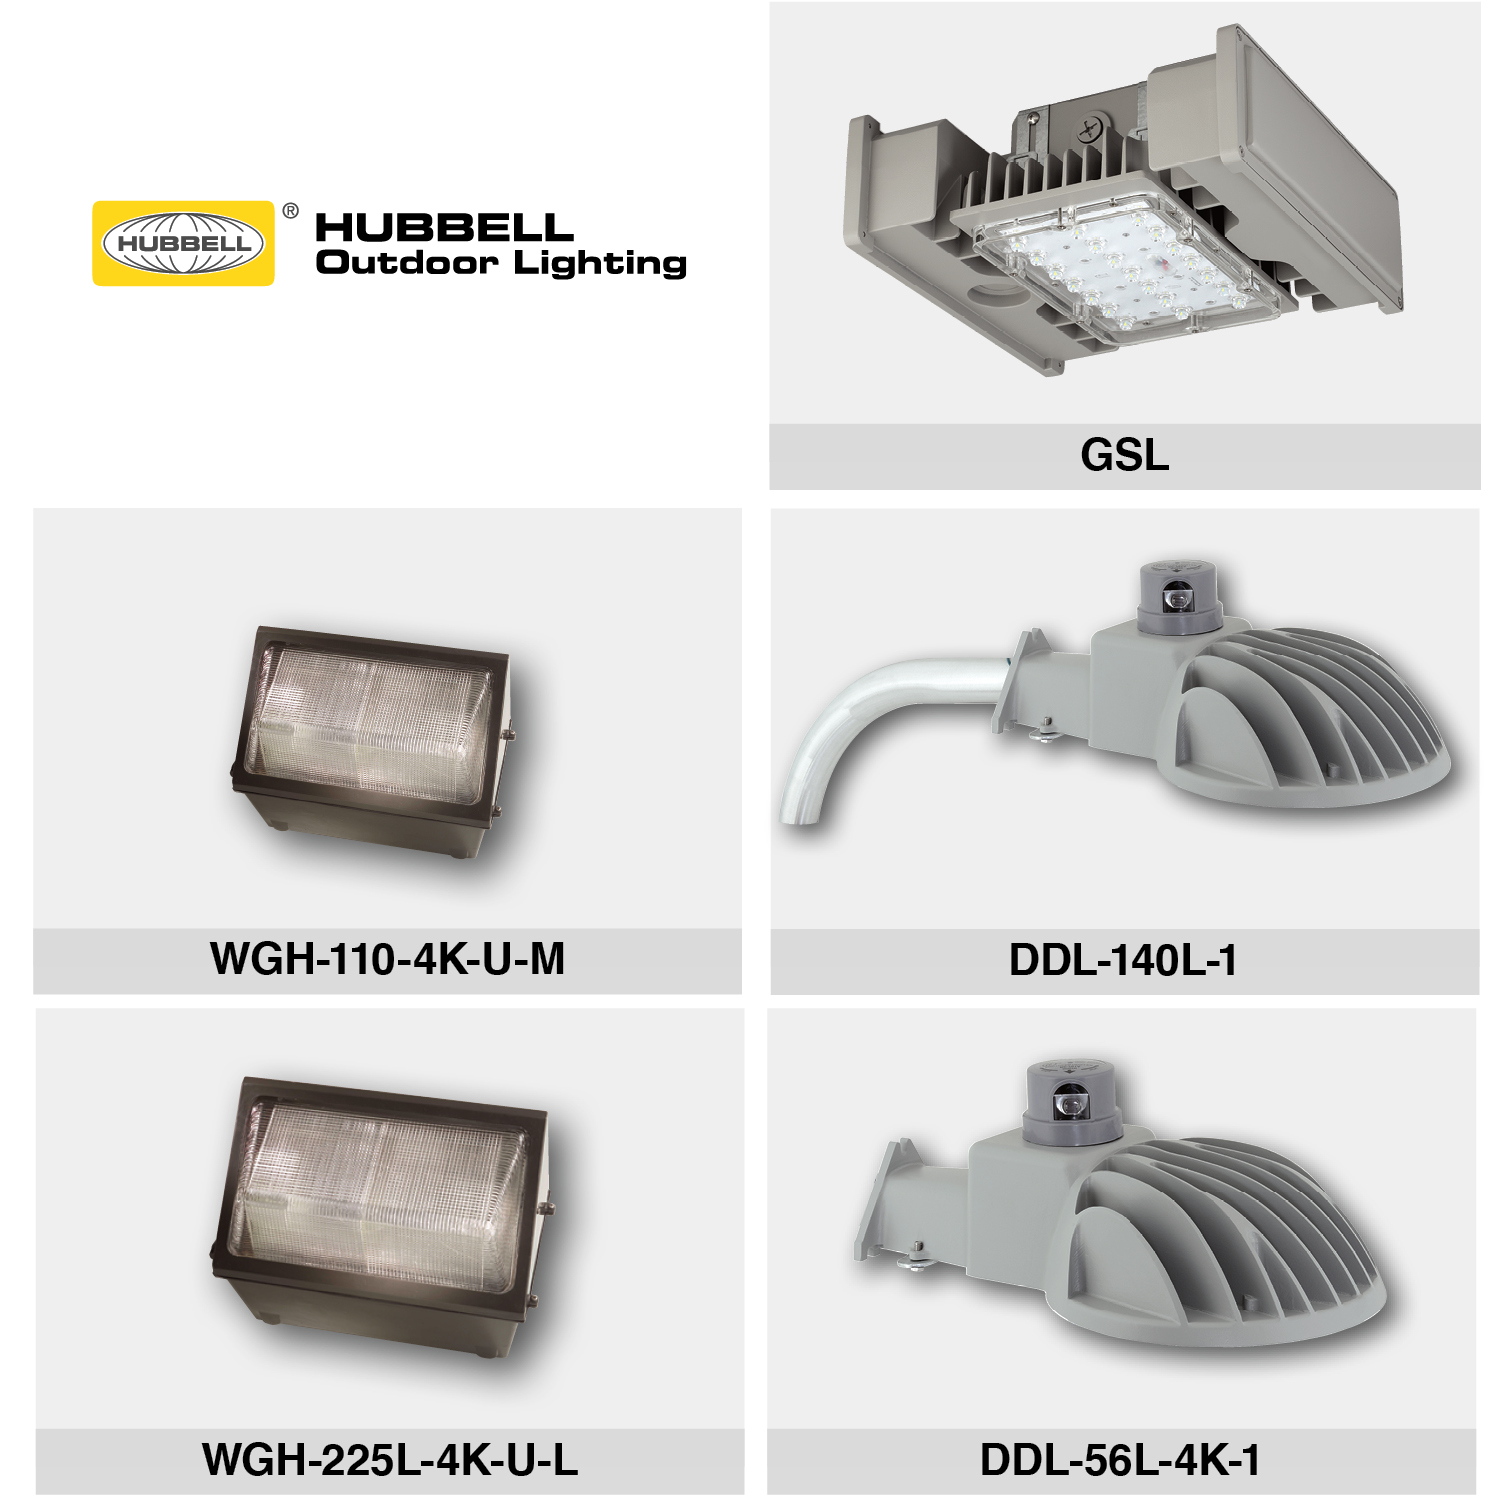 Hubbell outdoor lighting launches new led parking garage fixture hubbell outdoor lighting launches new led parking garage fixture business wire arubaitofo Gallery